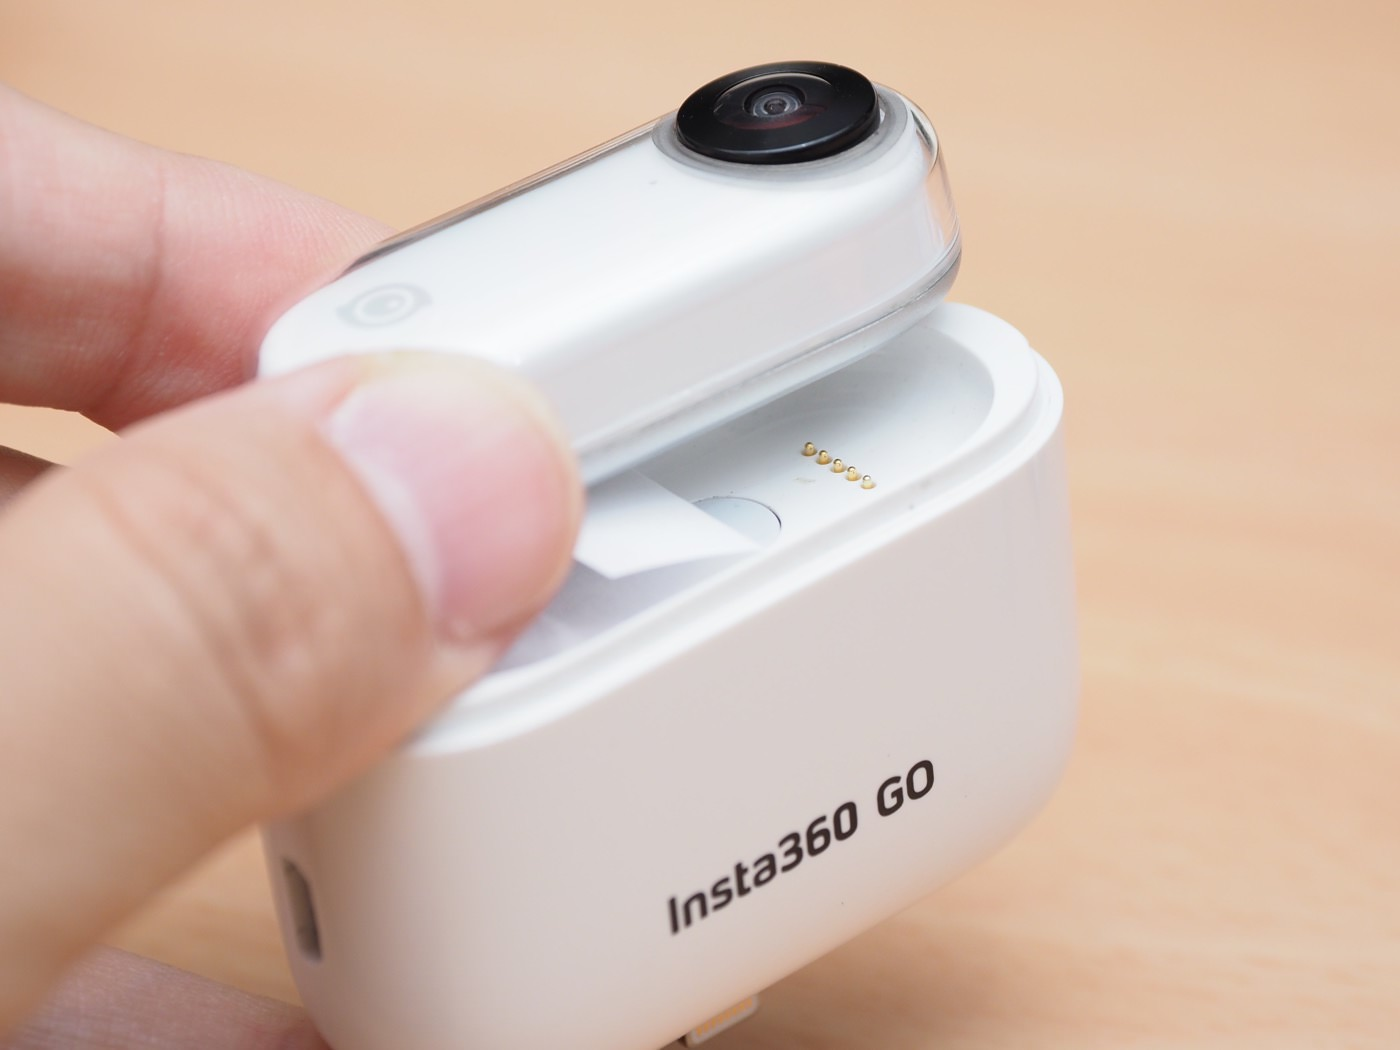 causes-of-insta360-go-battery-drain-and-temporary-measures_00005